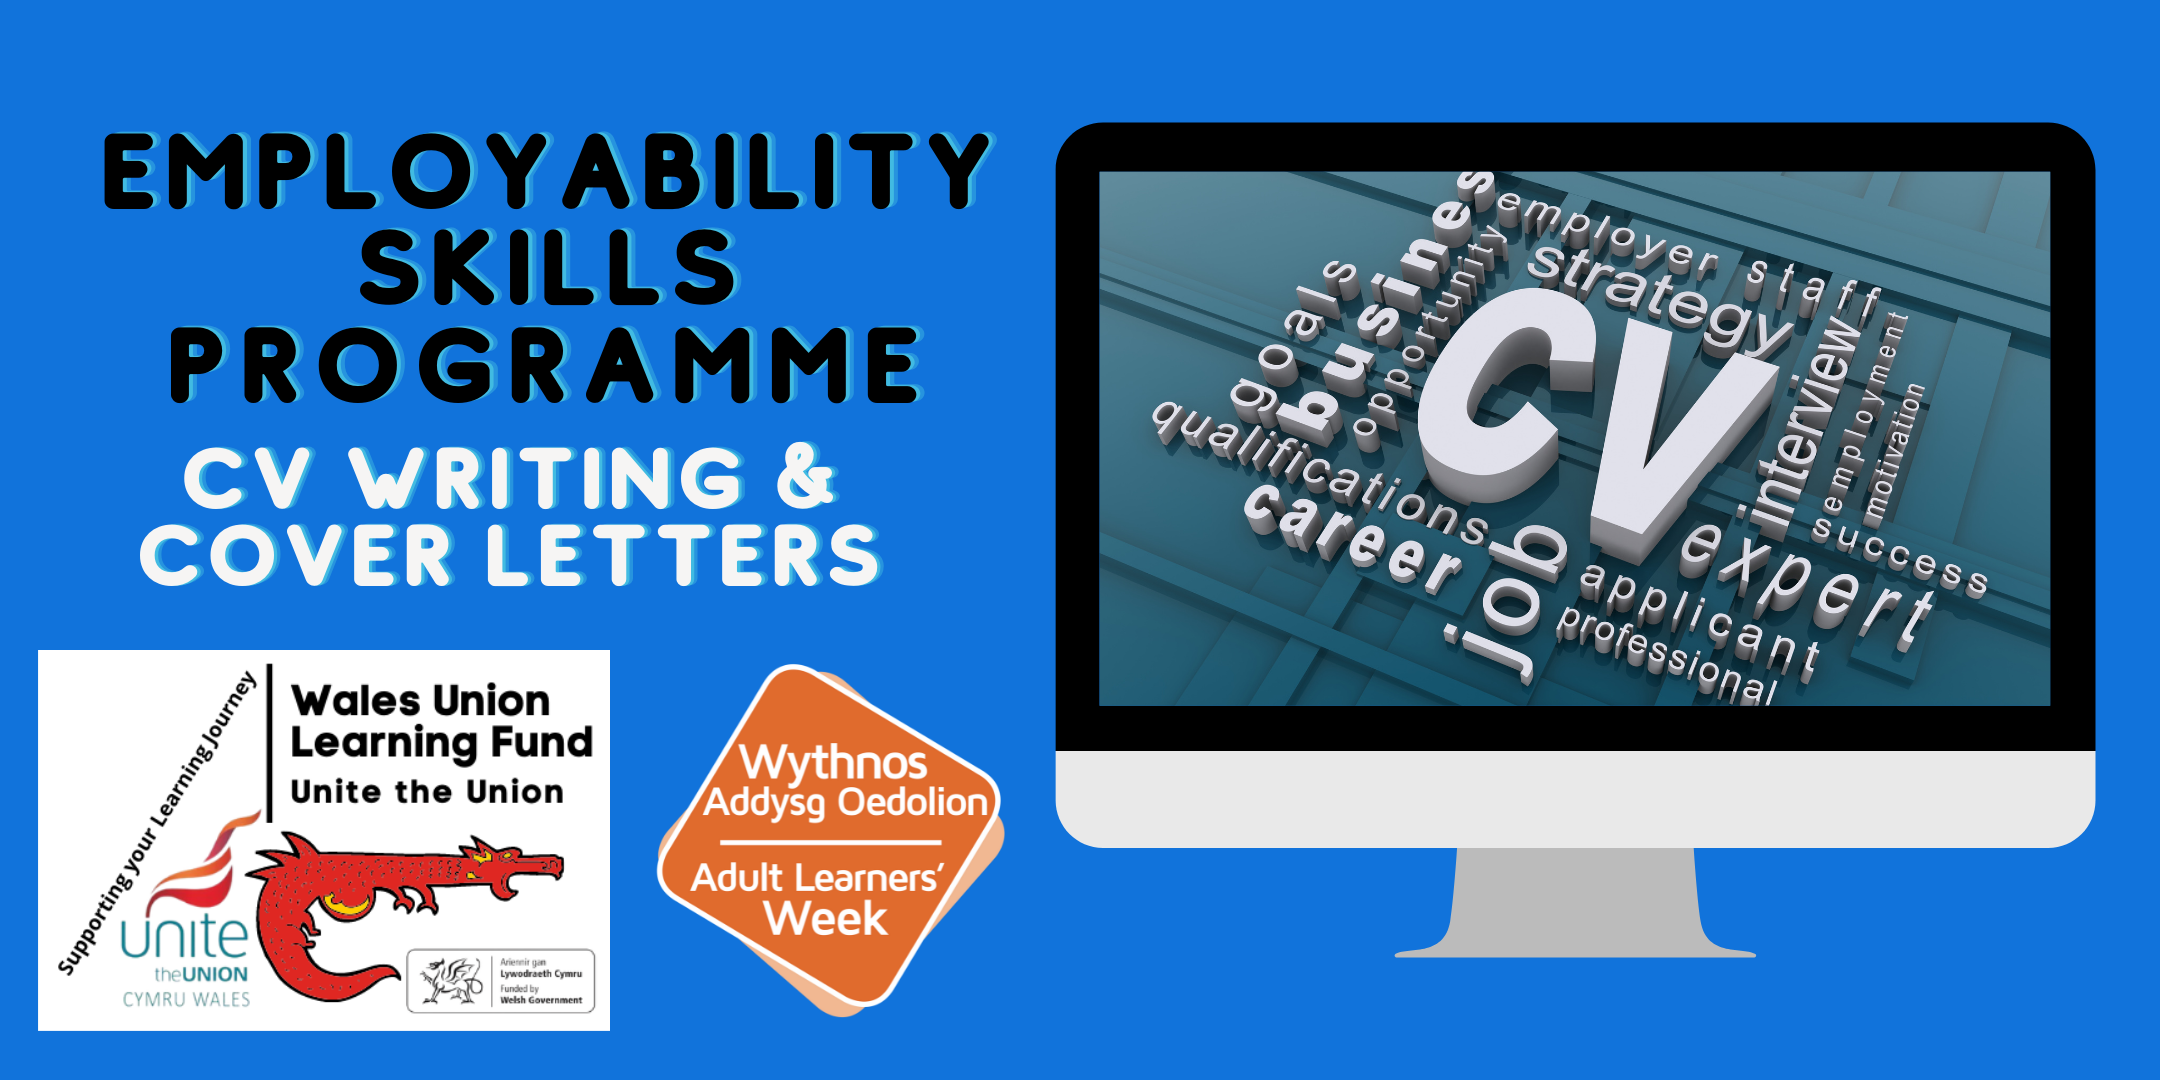 employability-skills-programme-cv-writing-cover-letters